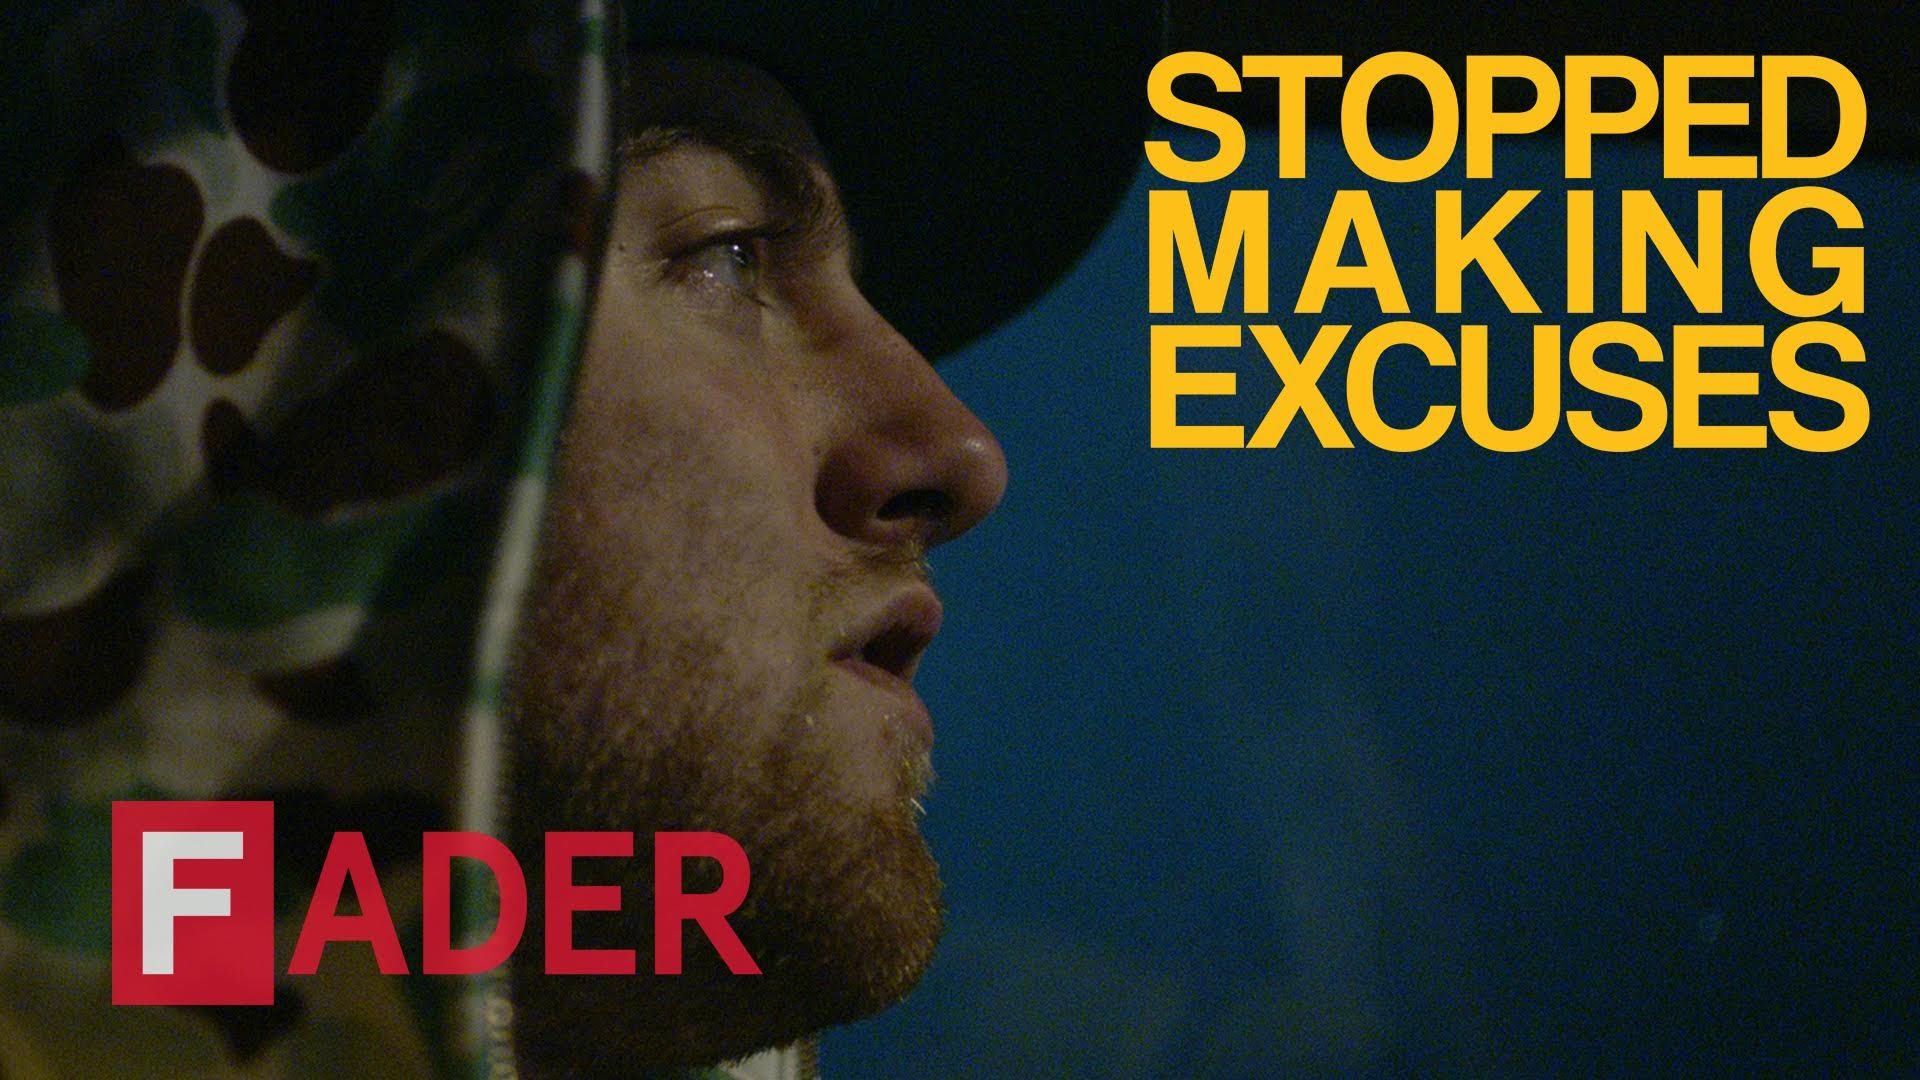 Fader Documentary: Mac Miller – Stopped Making Excuses